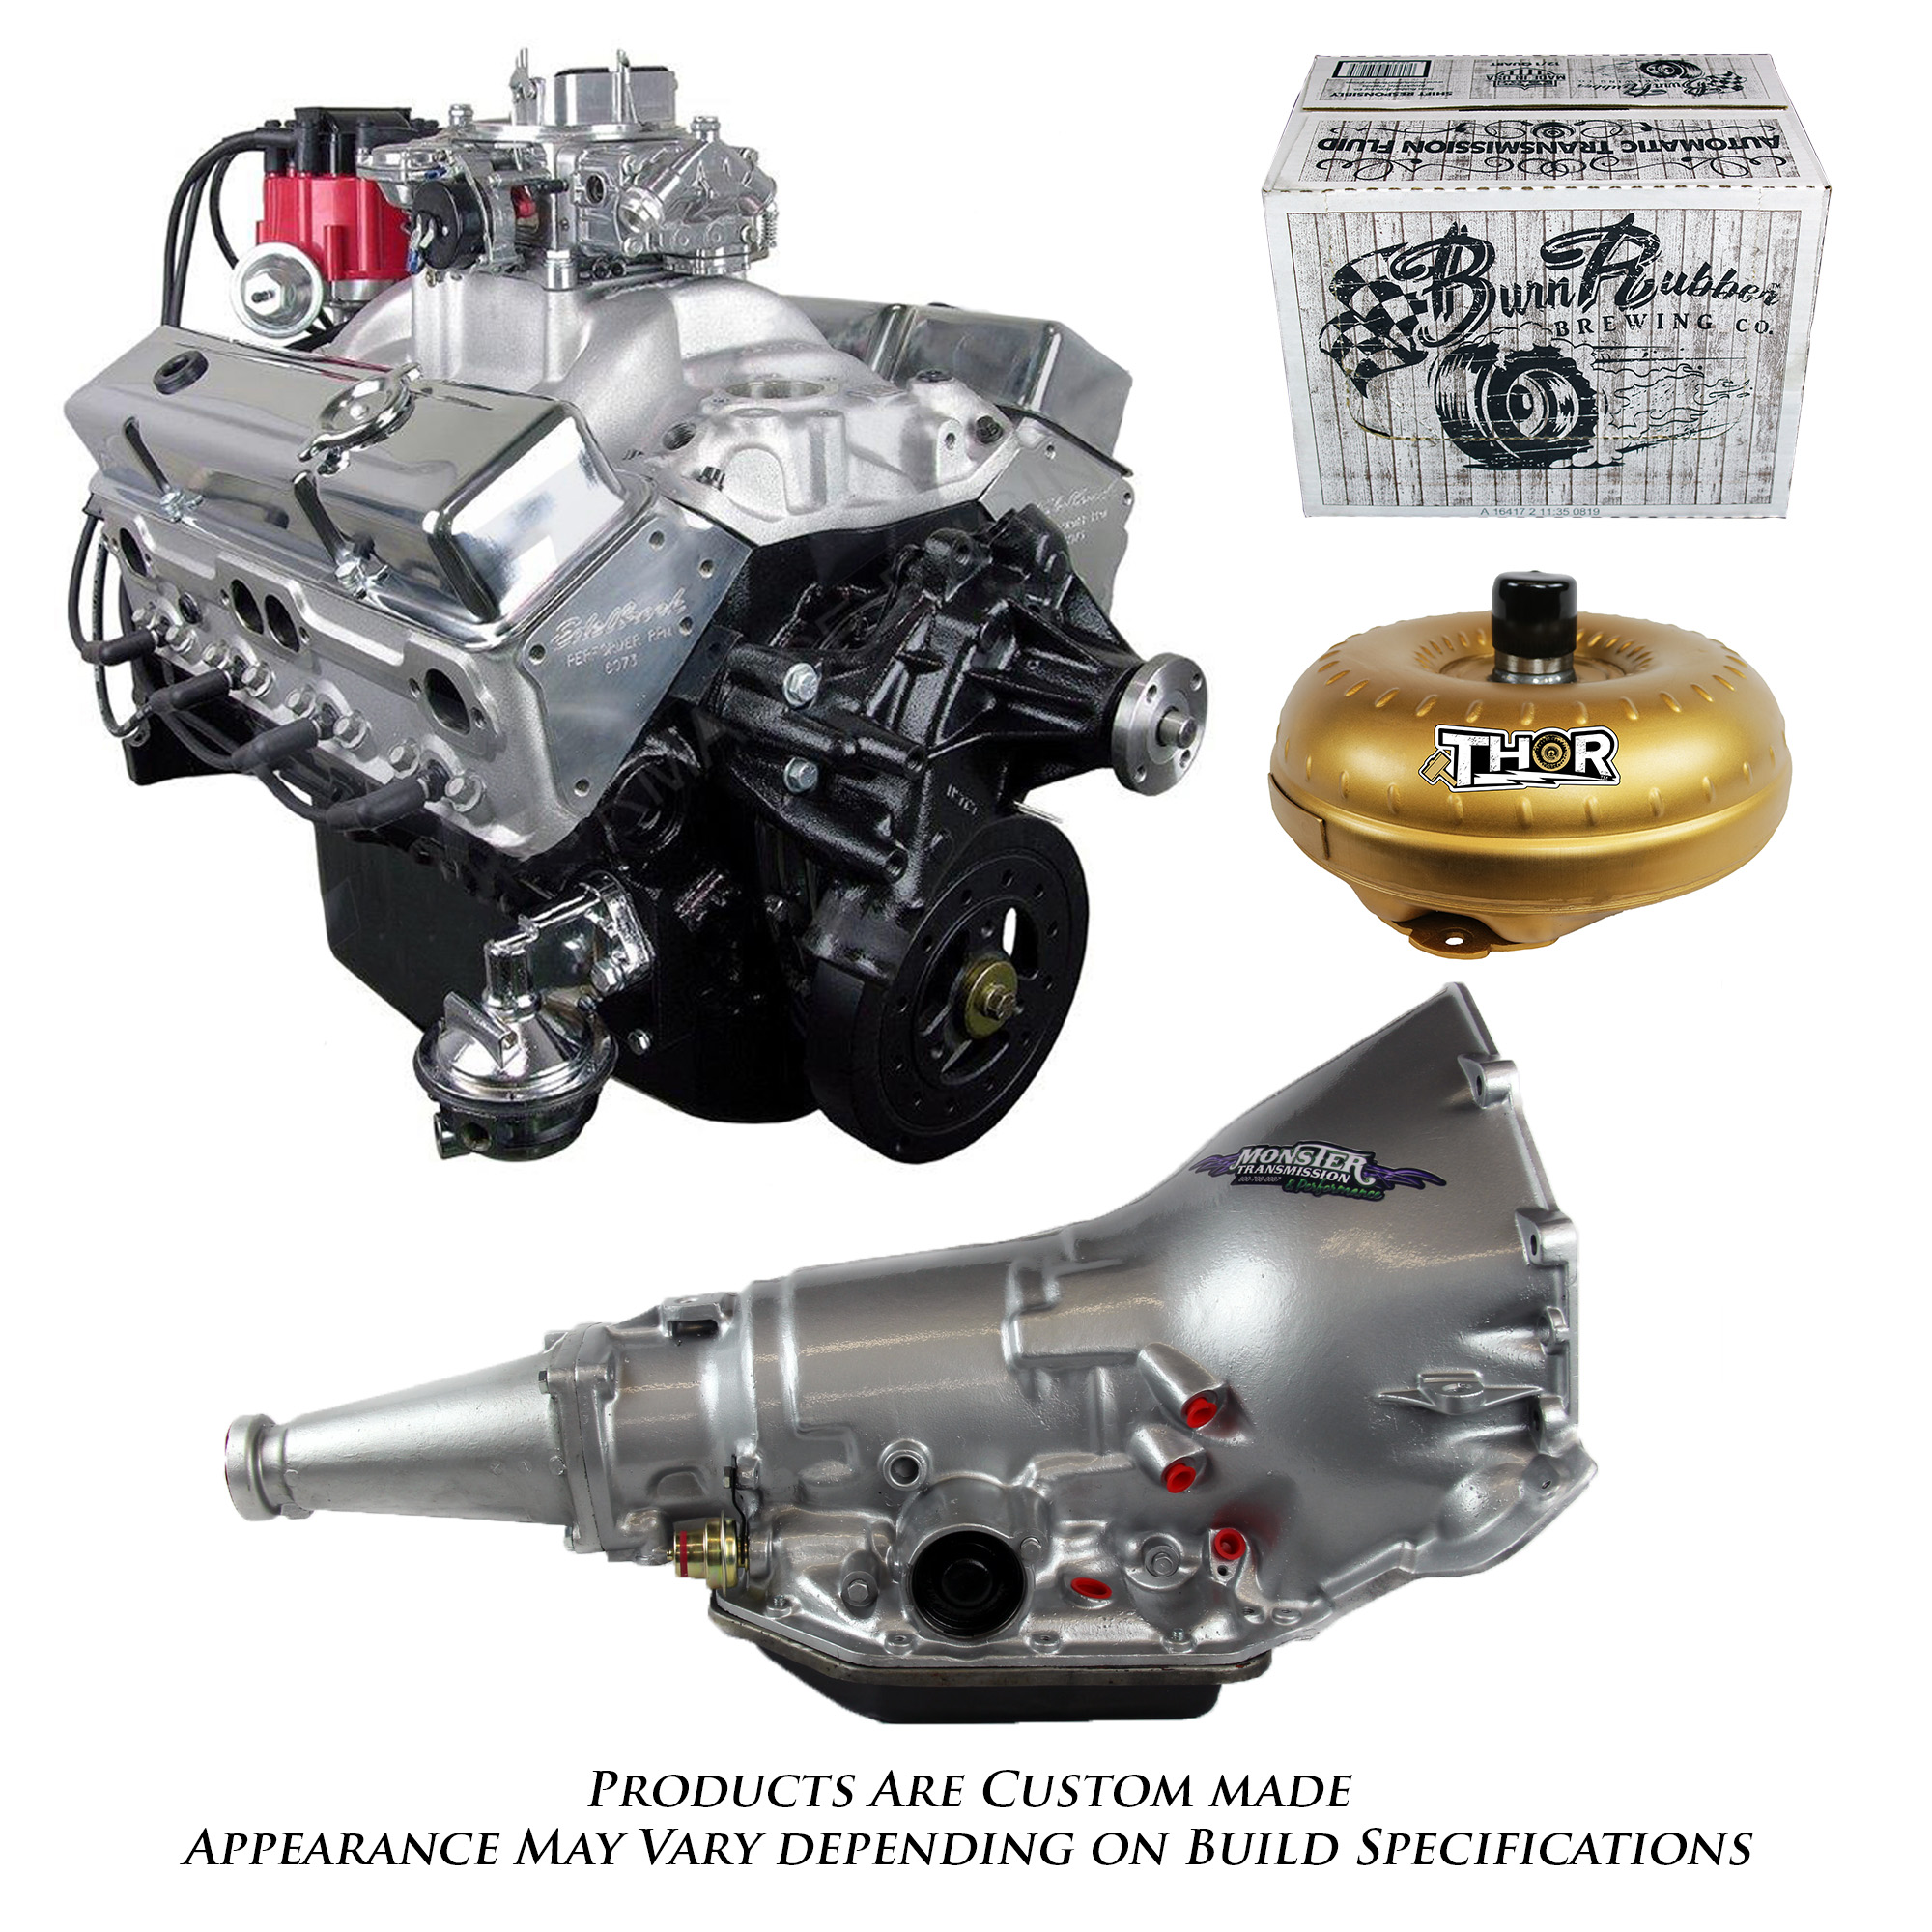 350 Chevy Engine Kit: Monster Powertrain Package, Chevy 350 Engine And TH350